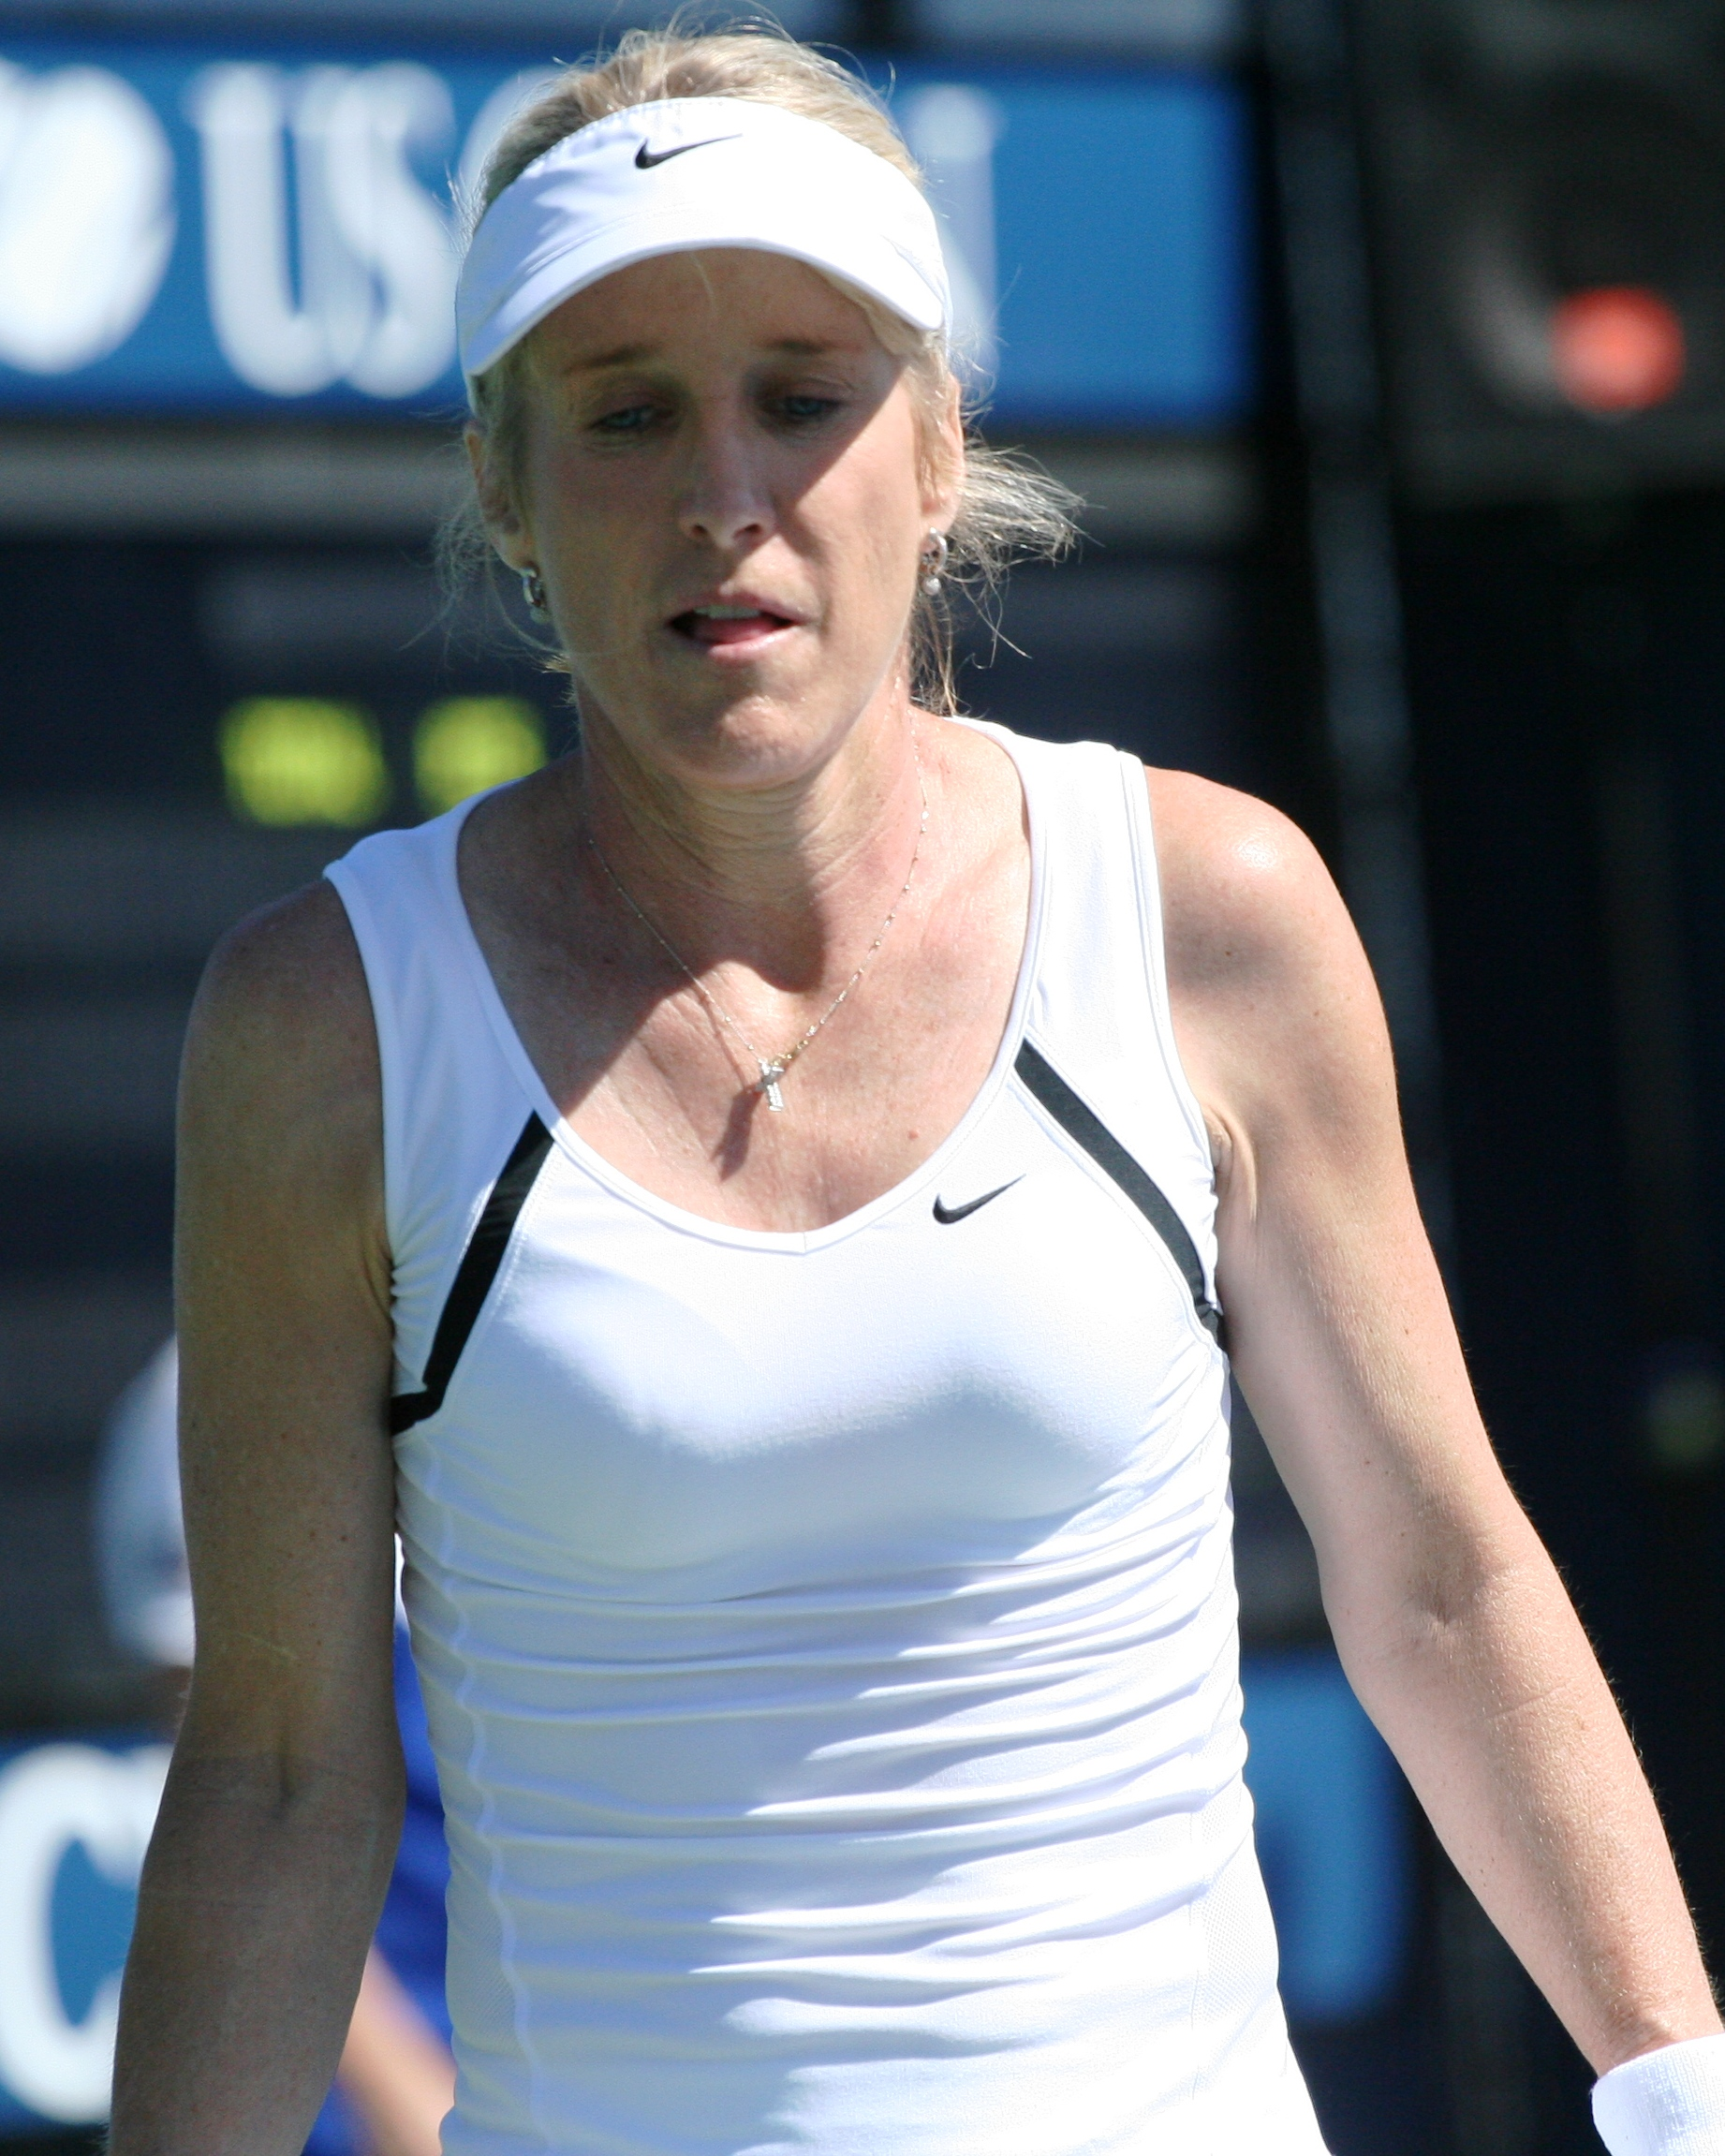 Depiction of Tracy Austin